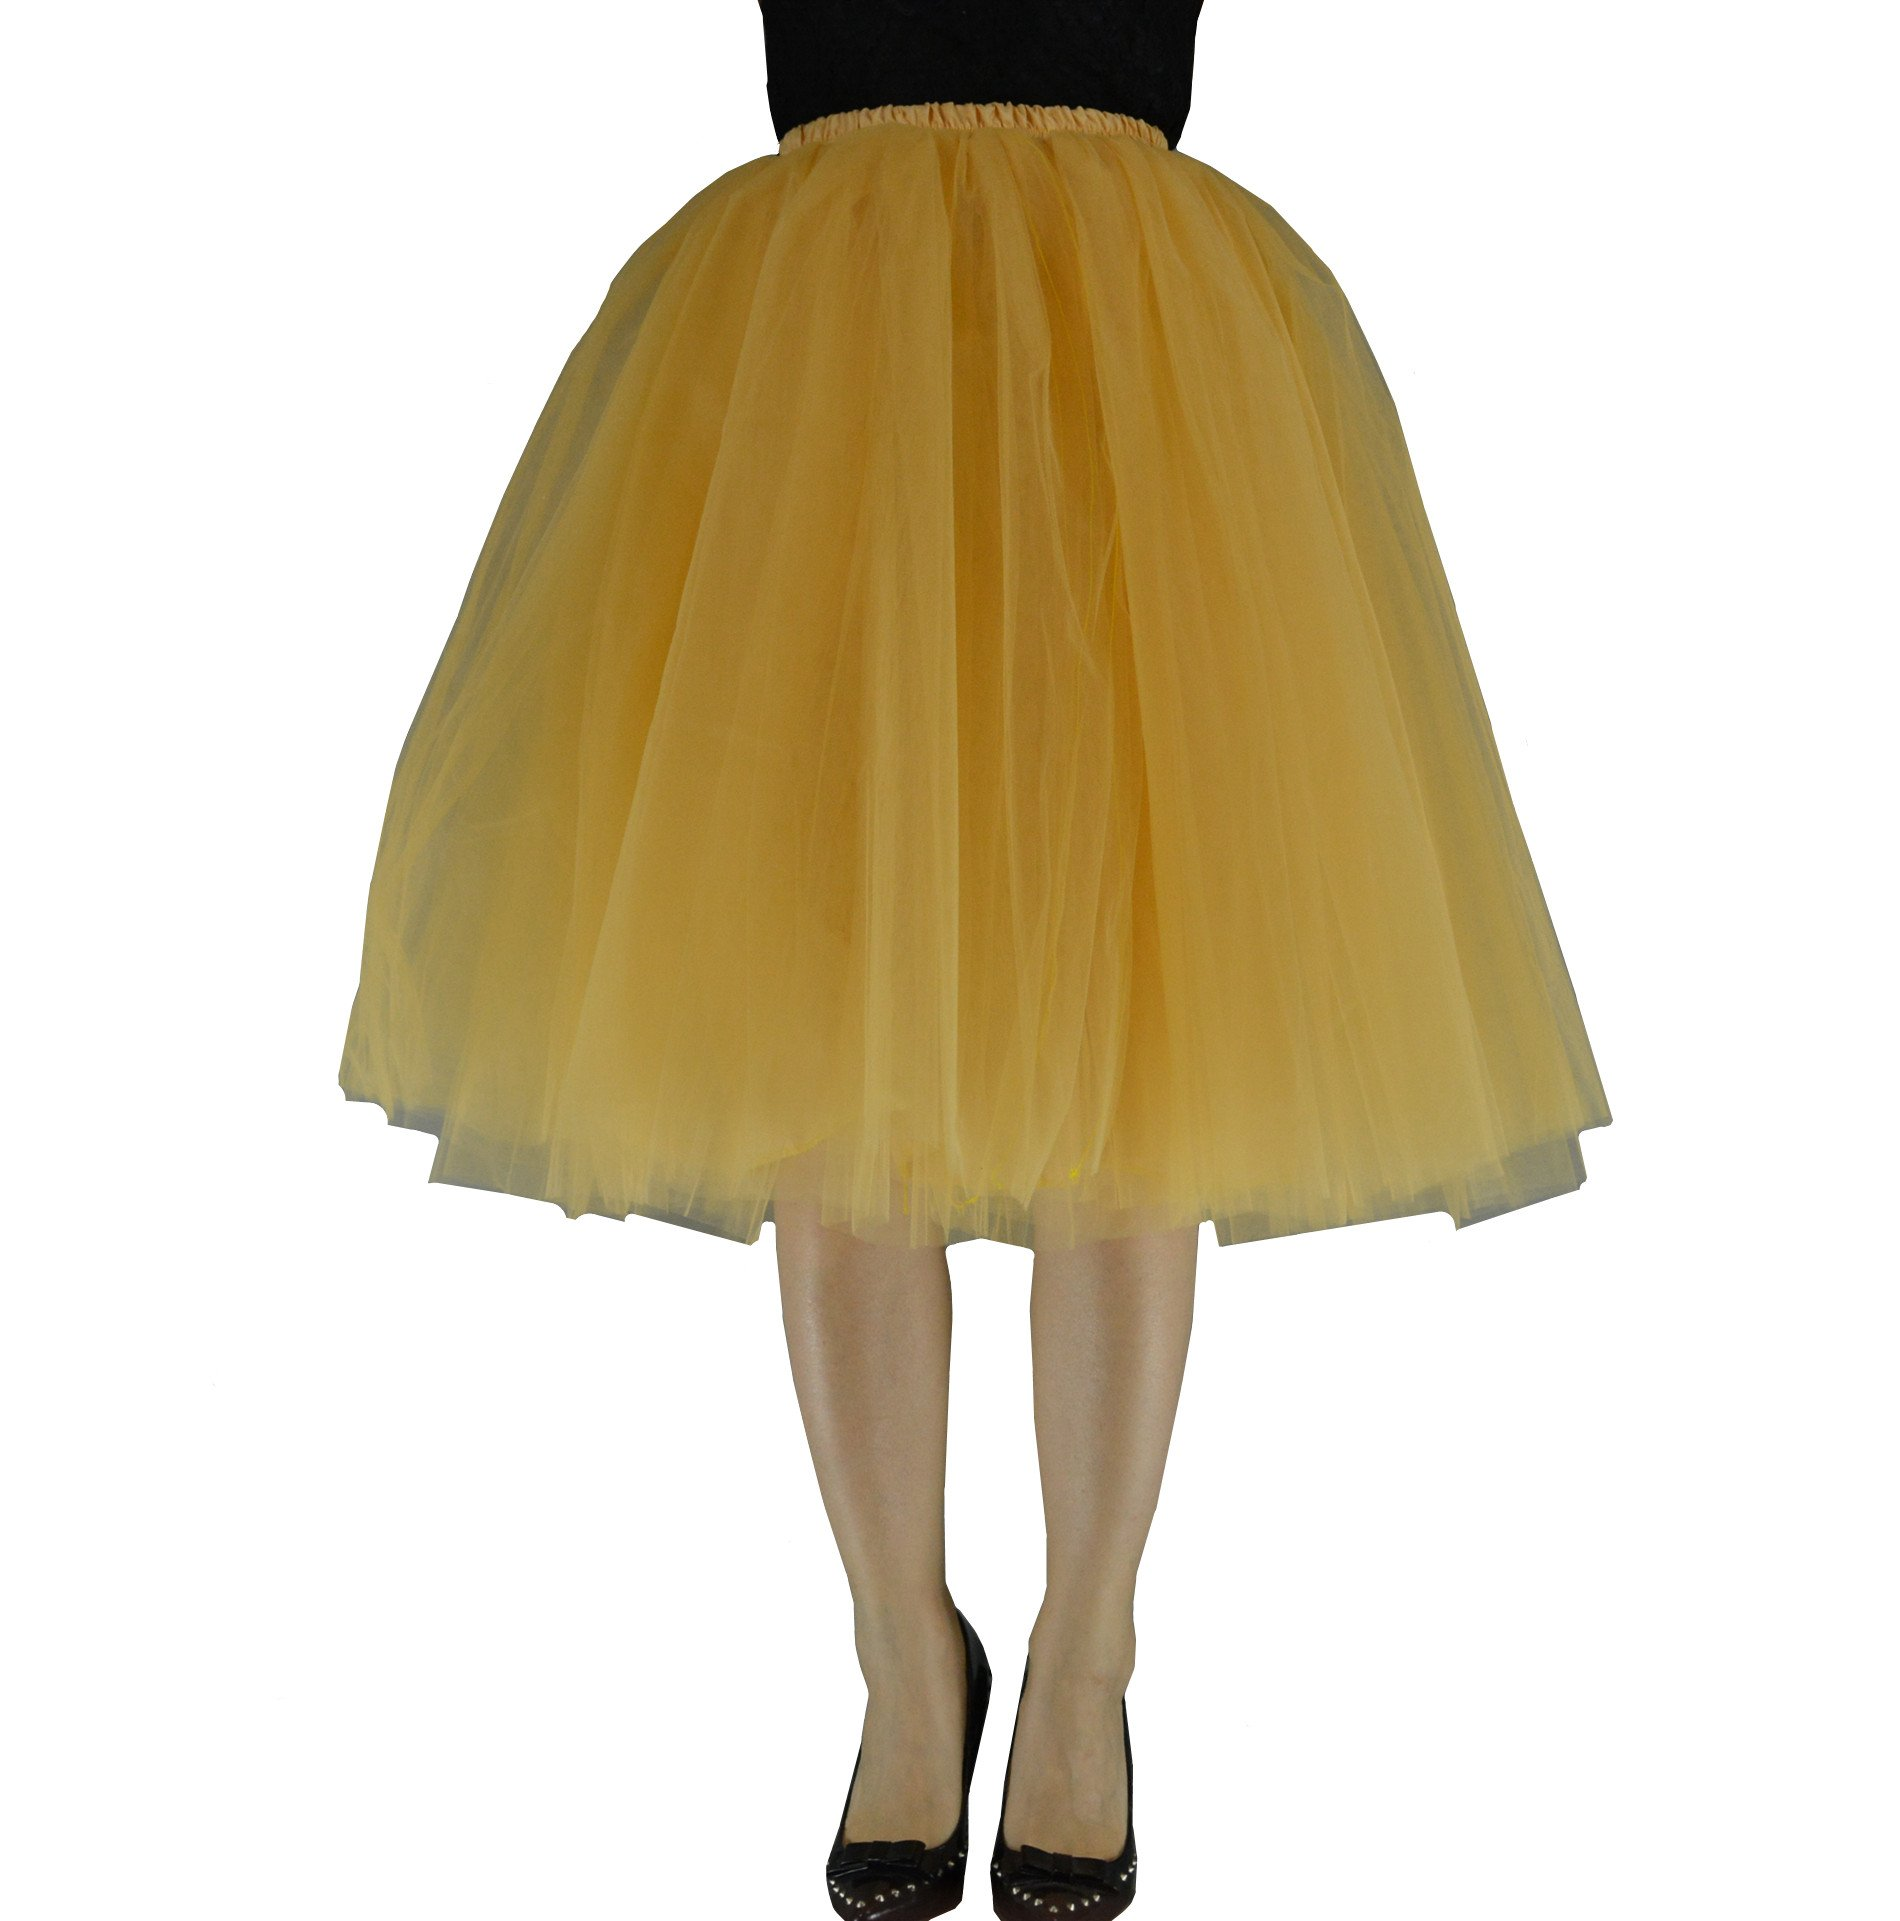 YSJERA Women's Layered Adult Tutu Tulle Midi/Knee Length A Line Prom Party Skirt Petticoat (XL, Champagne)